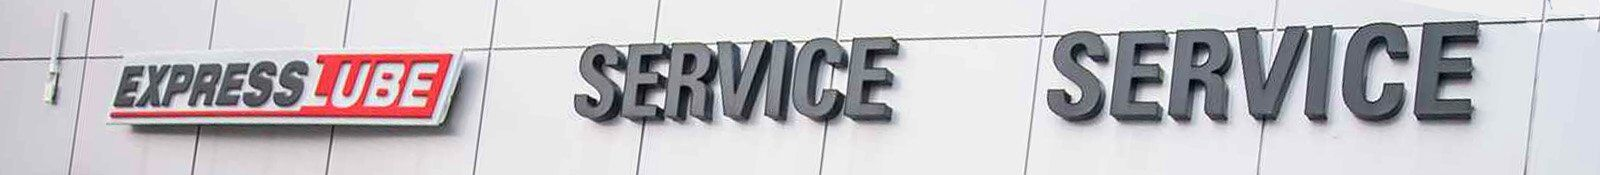 Schedule Service With One Of Our World Class AZ Toyota Service Advisors